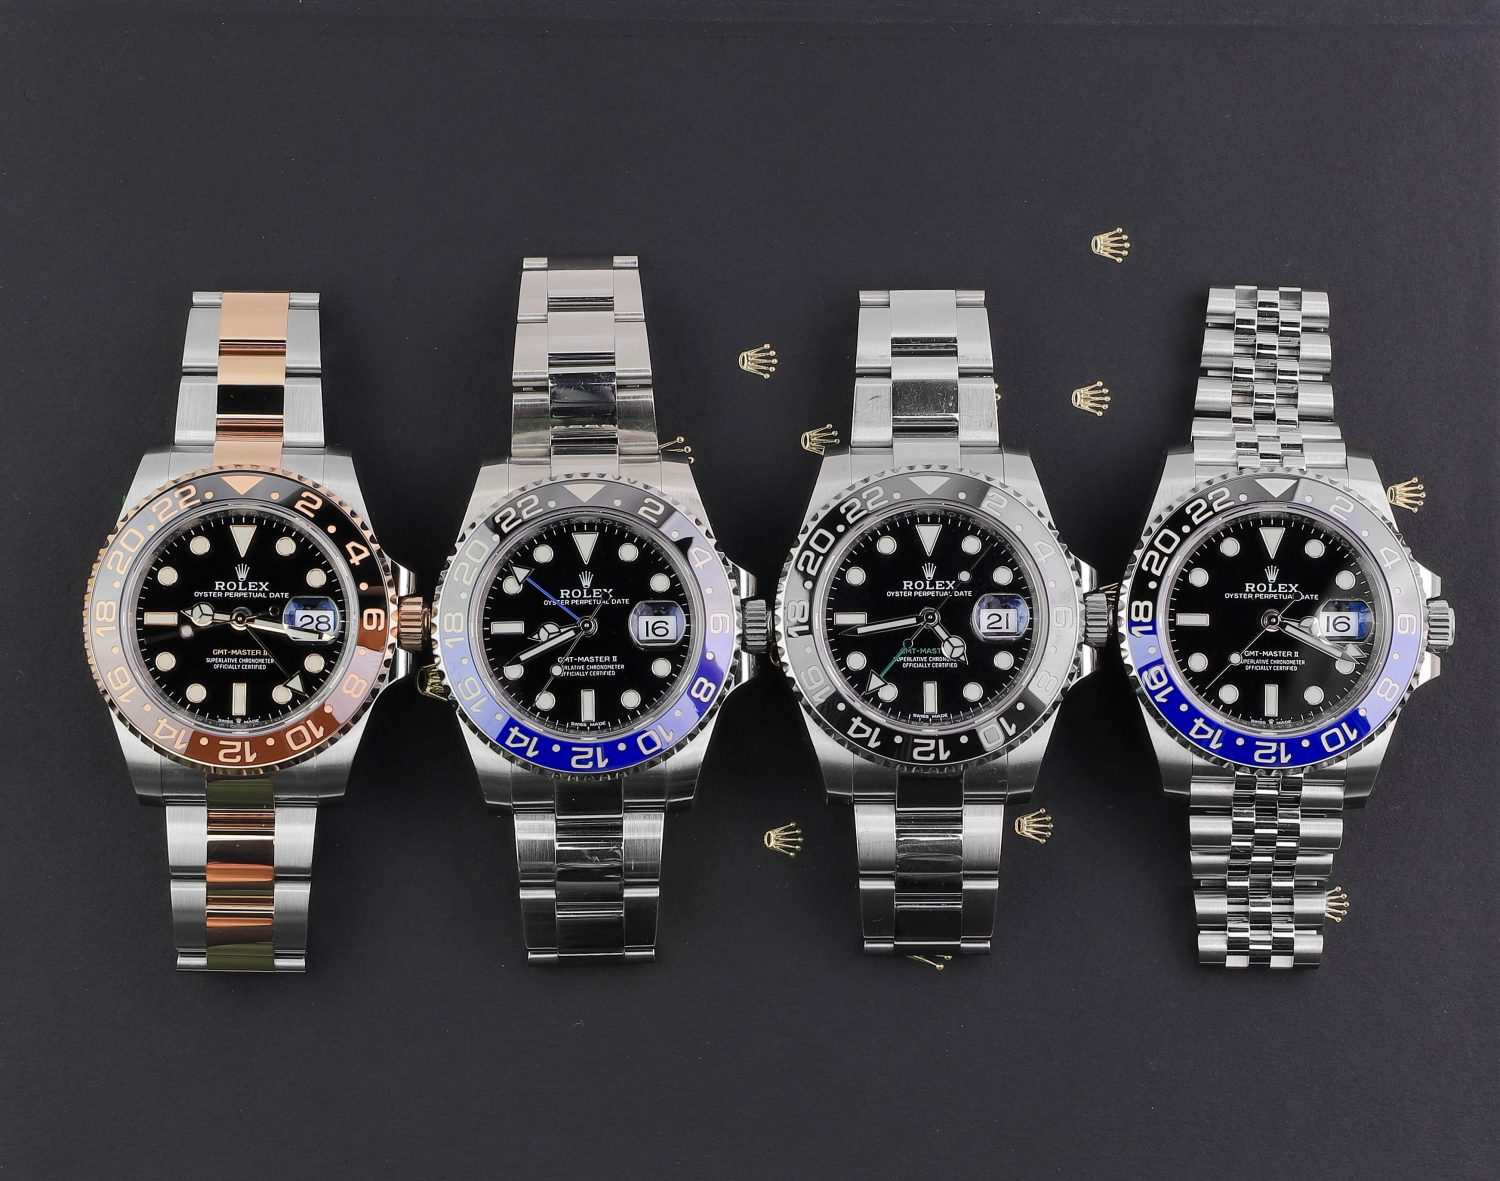 Rolex sports watch collection